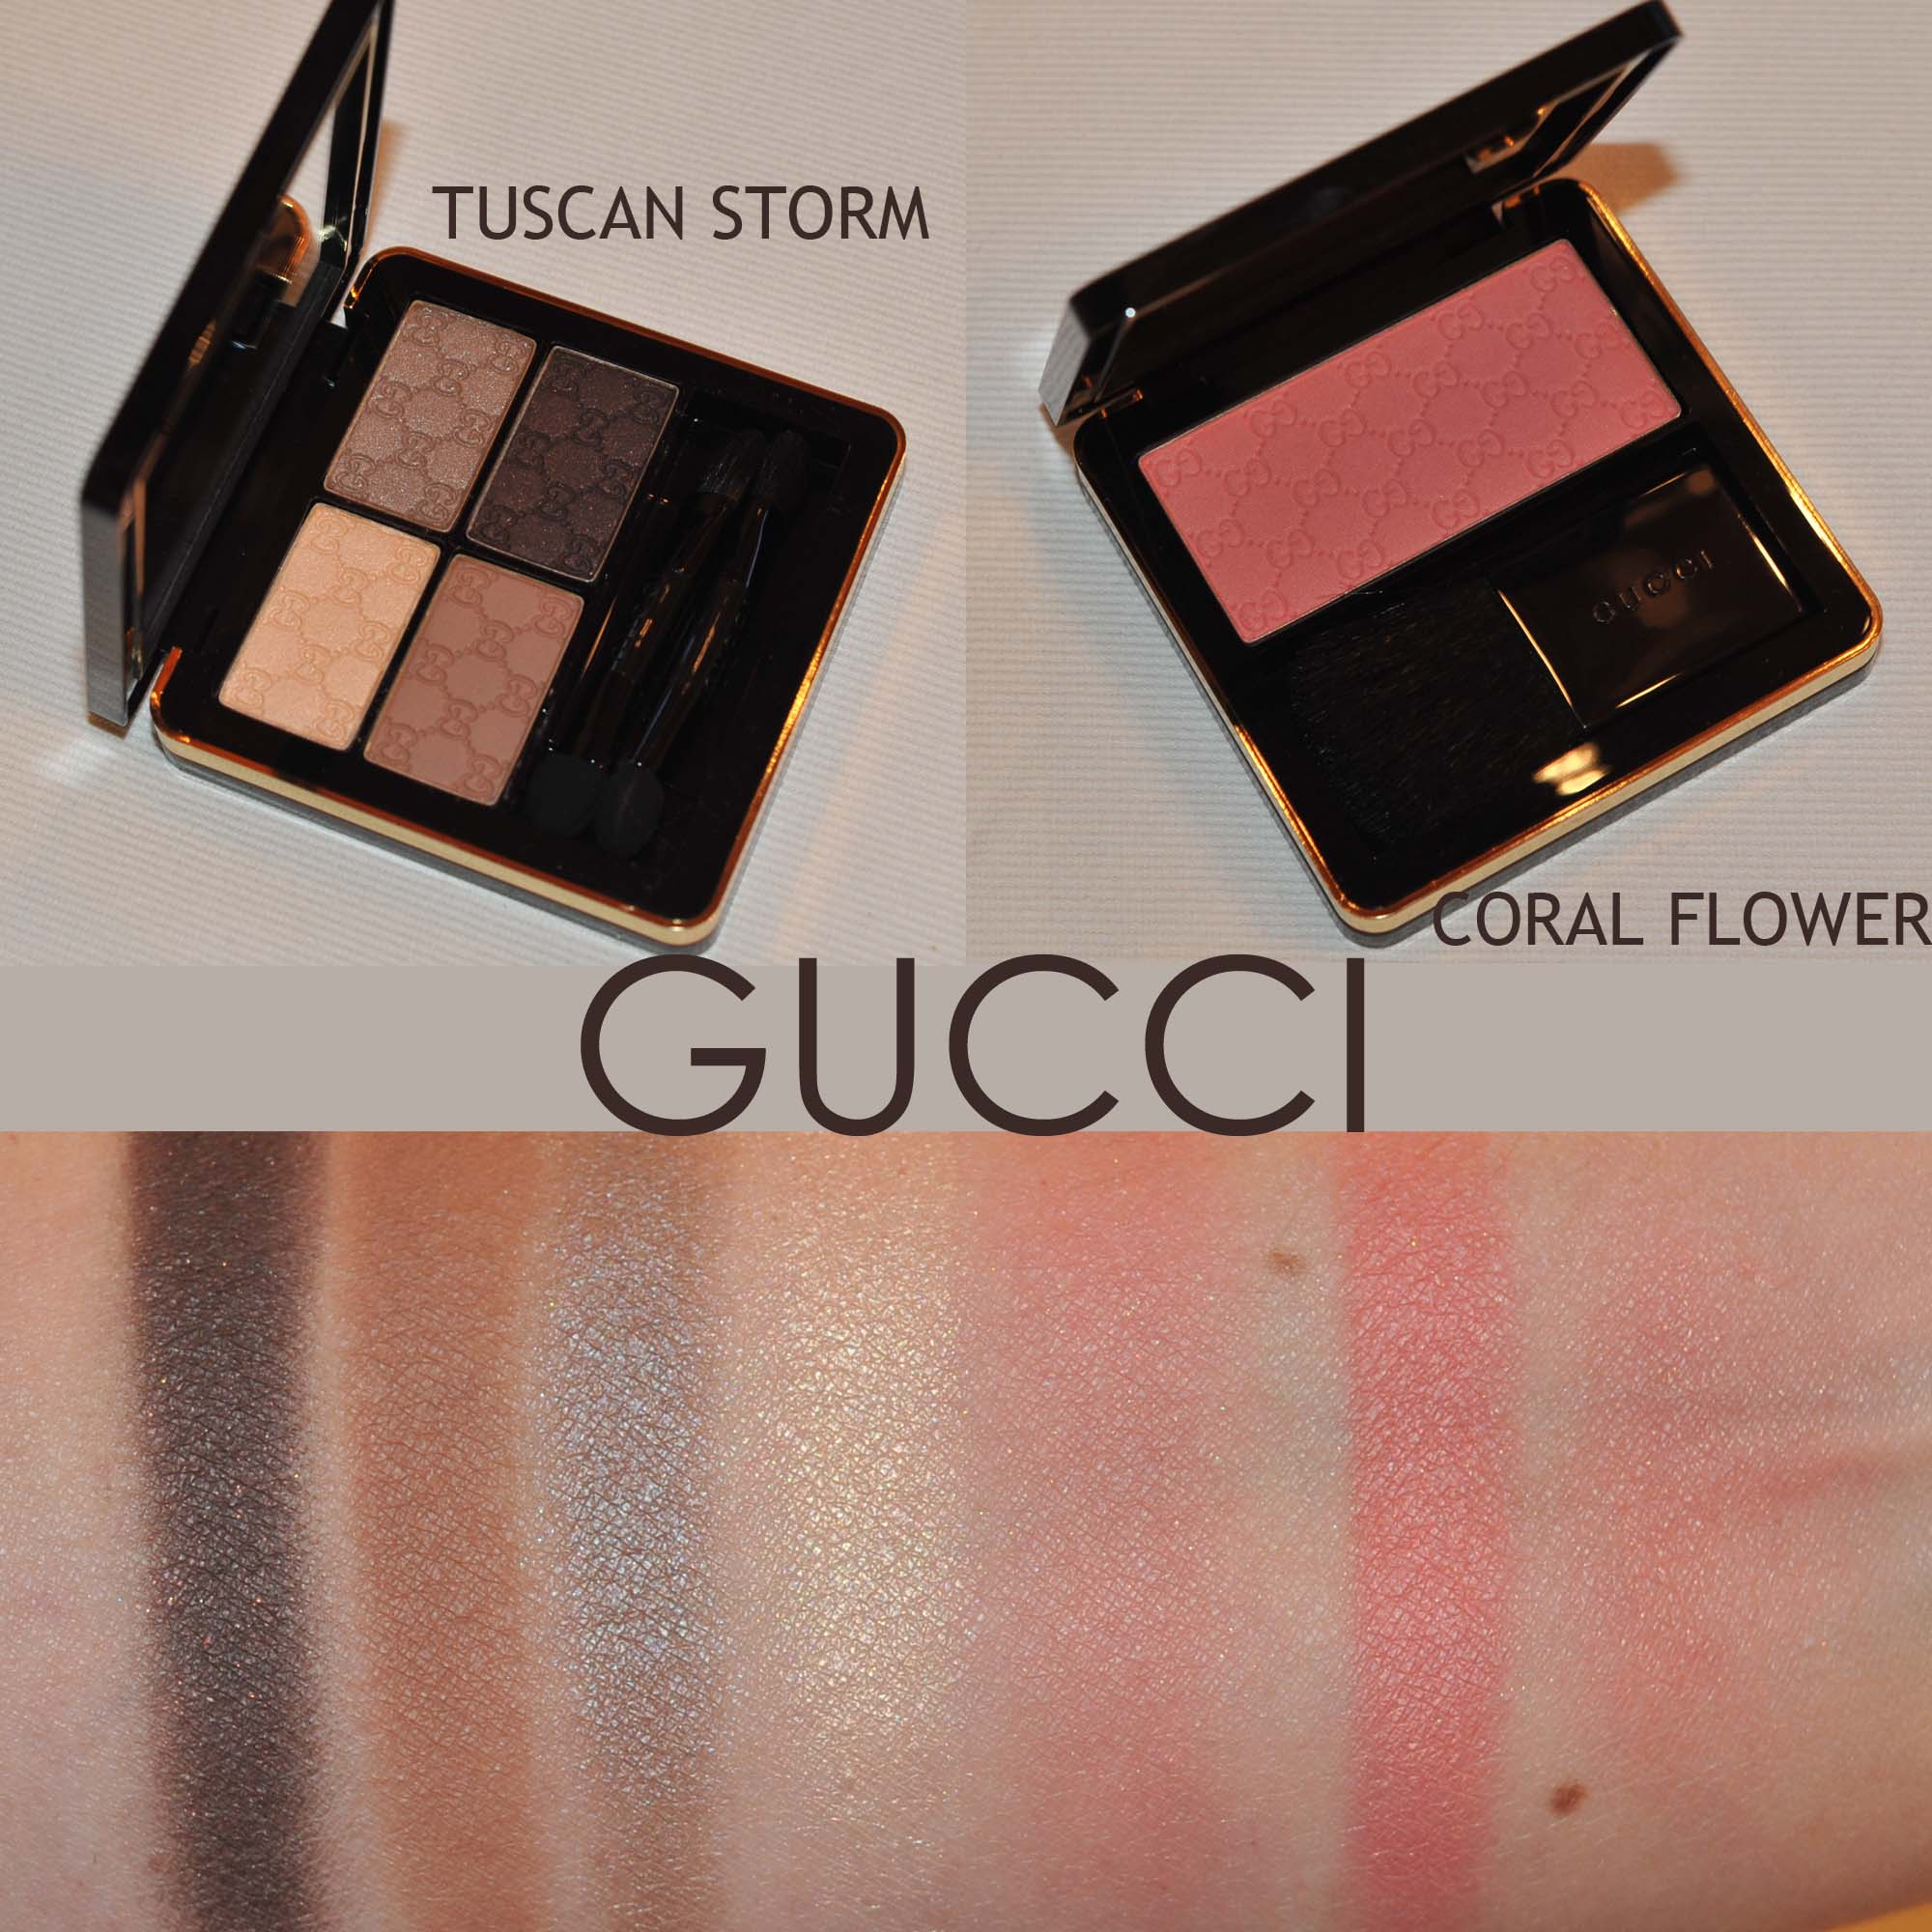 Gucci beauty first impressions on tuscan storm and coral flower gucci beauty first impressions on tuscan storm and coral flower izmirmasajfo